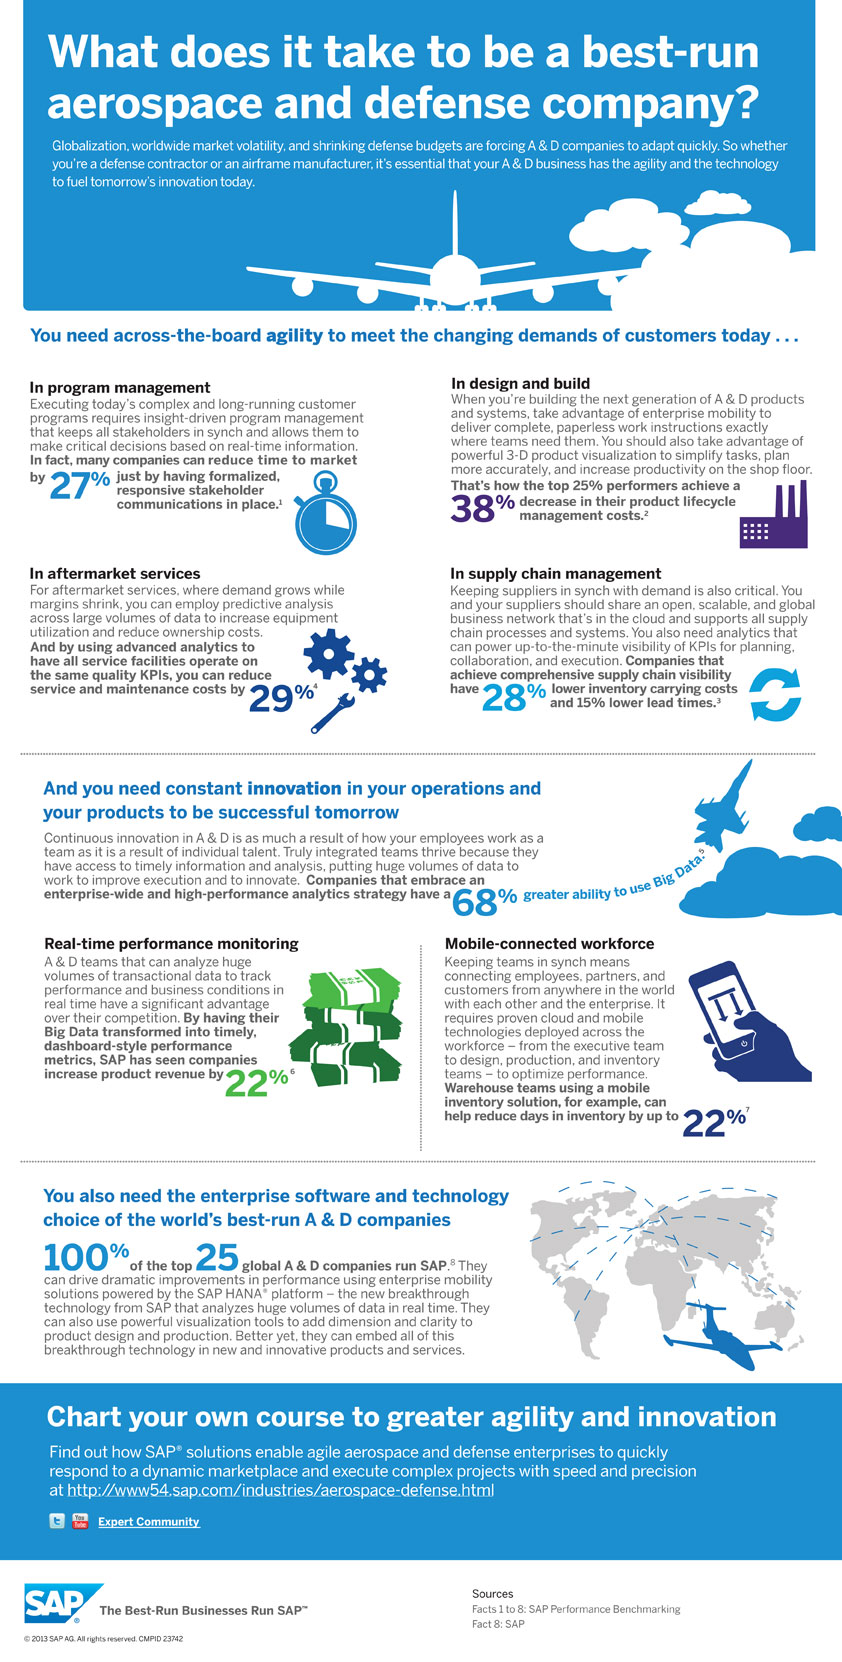 SAP_infographic_23742_A&D_FNL_web_use.jpg